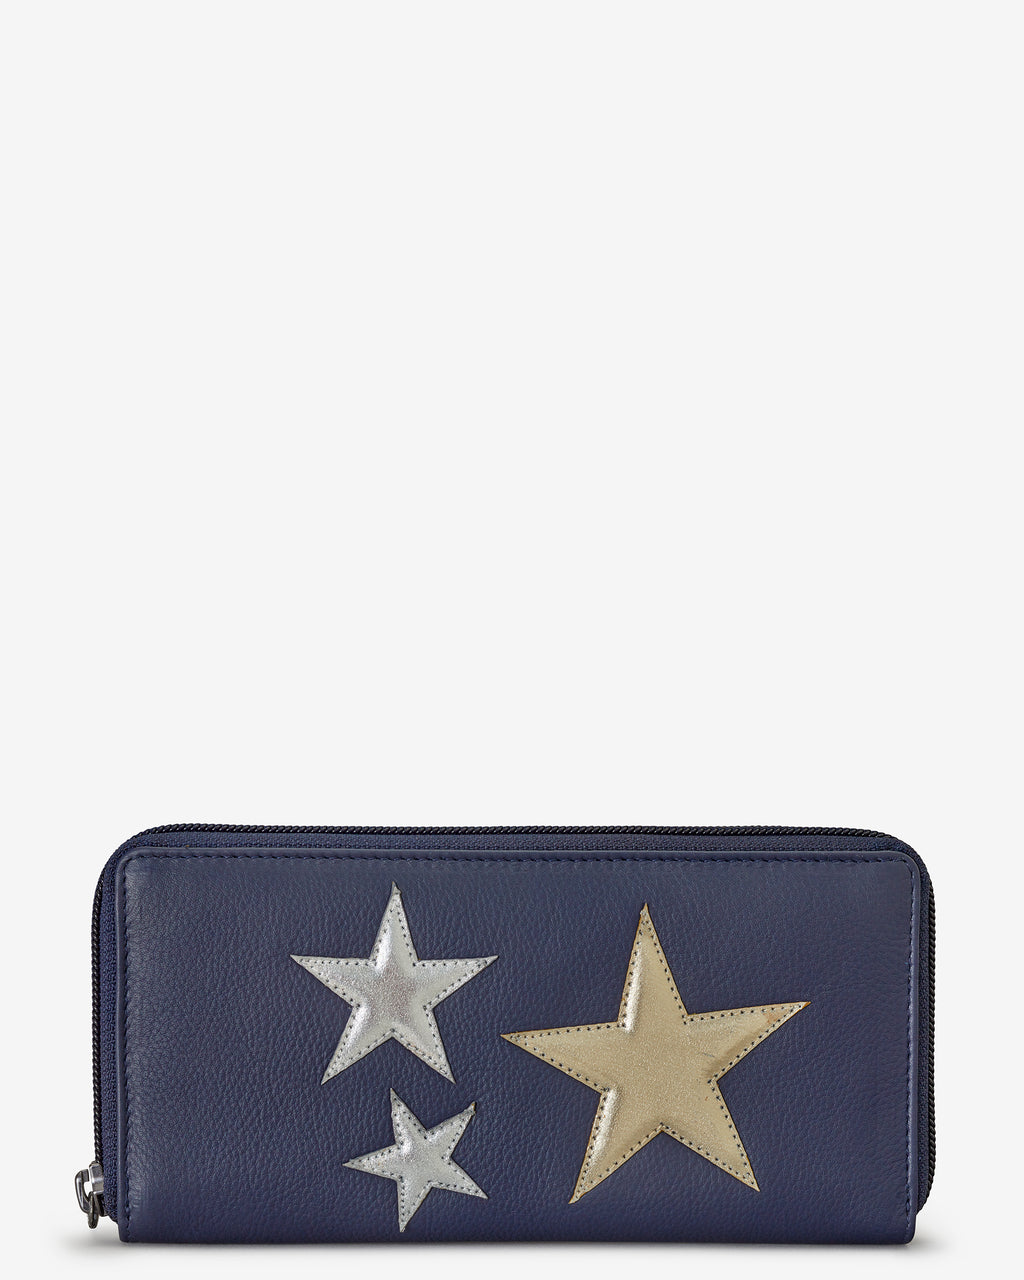 Stars Zip Round Navy Leather Purse